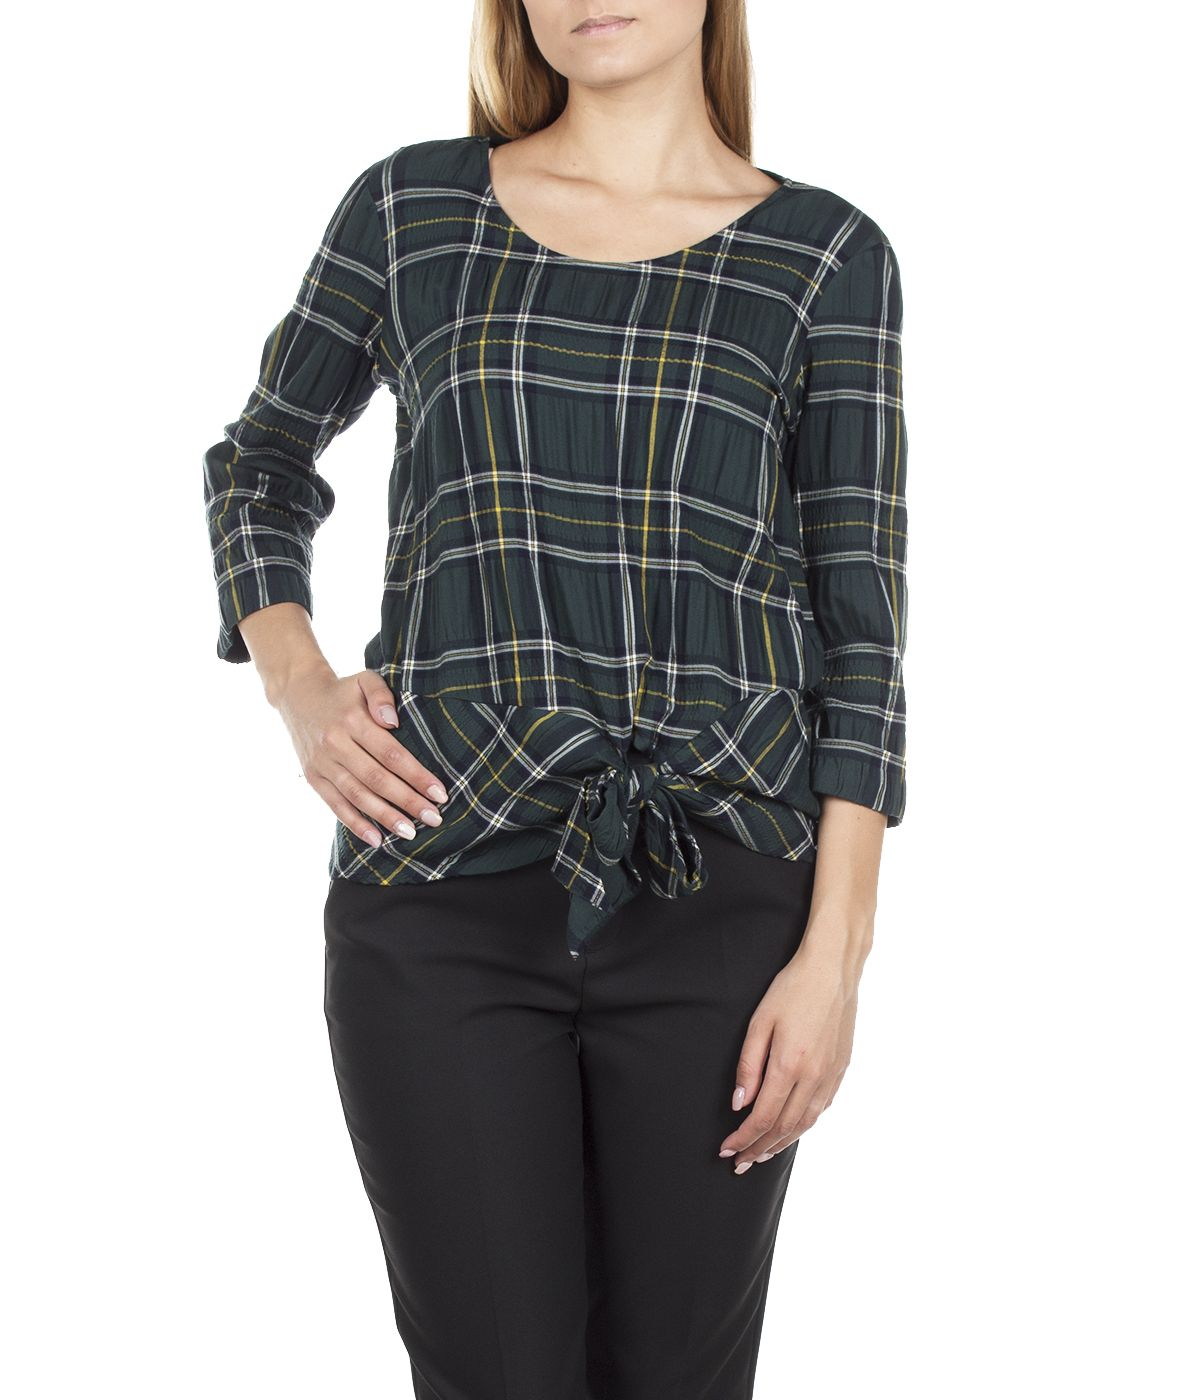 CHECKED BLOUSE FROM VISCOSE WITH ¾ SLEEVES AND TIED DETAIL 2